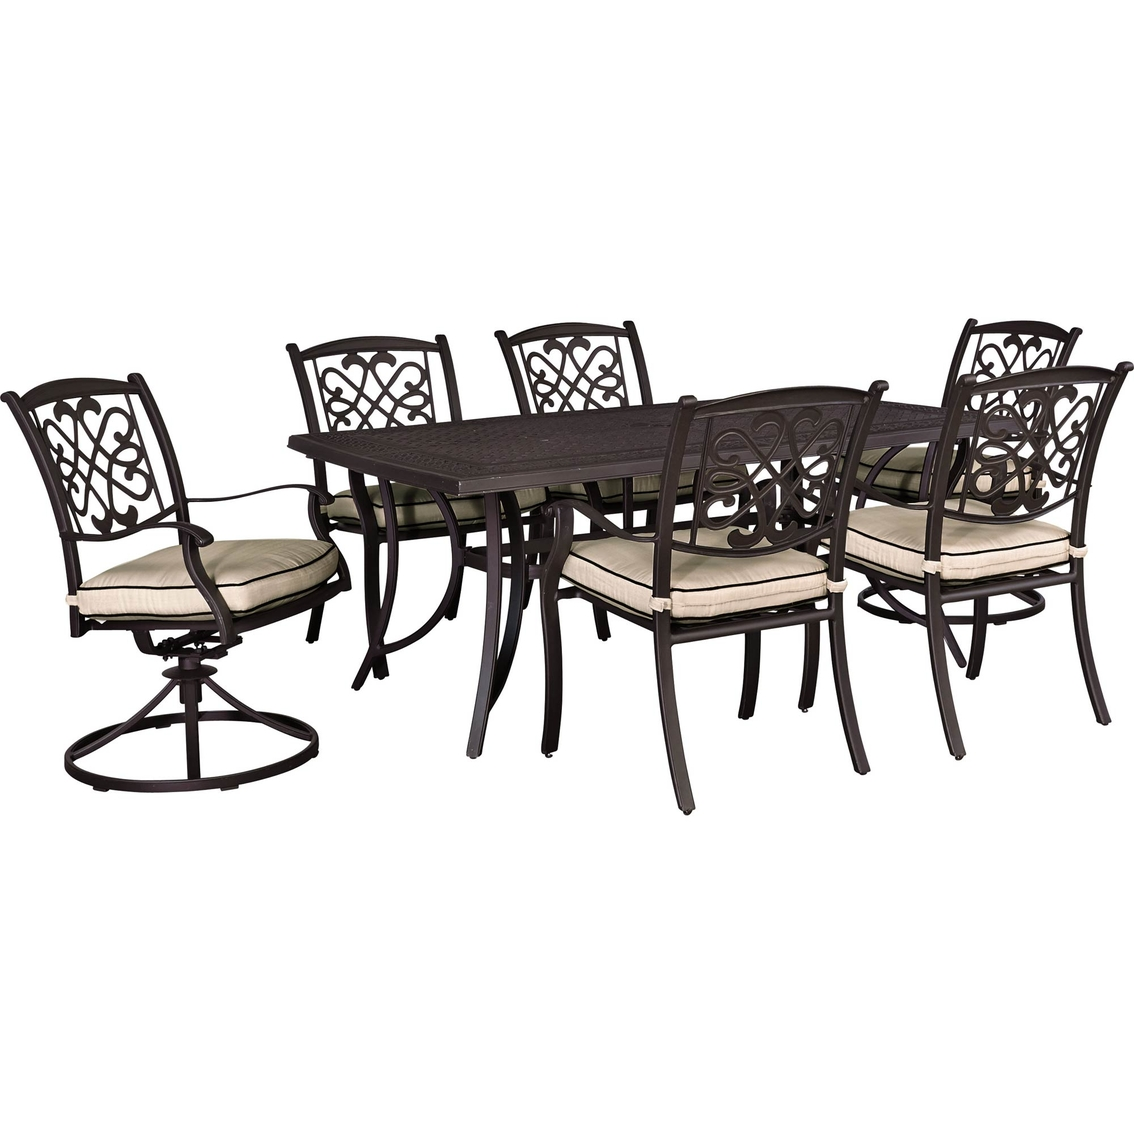 table with swivel chairs massage chair retailers ashley burnella outdoor dining four